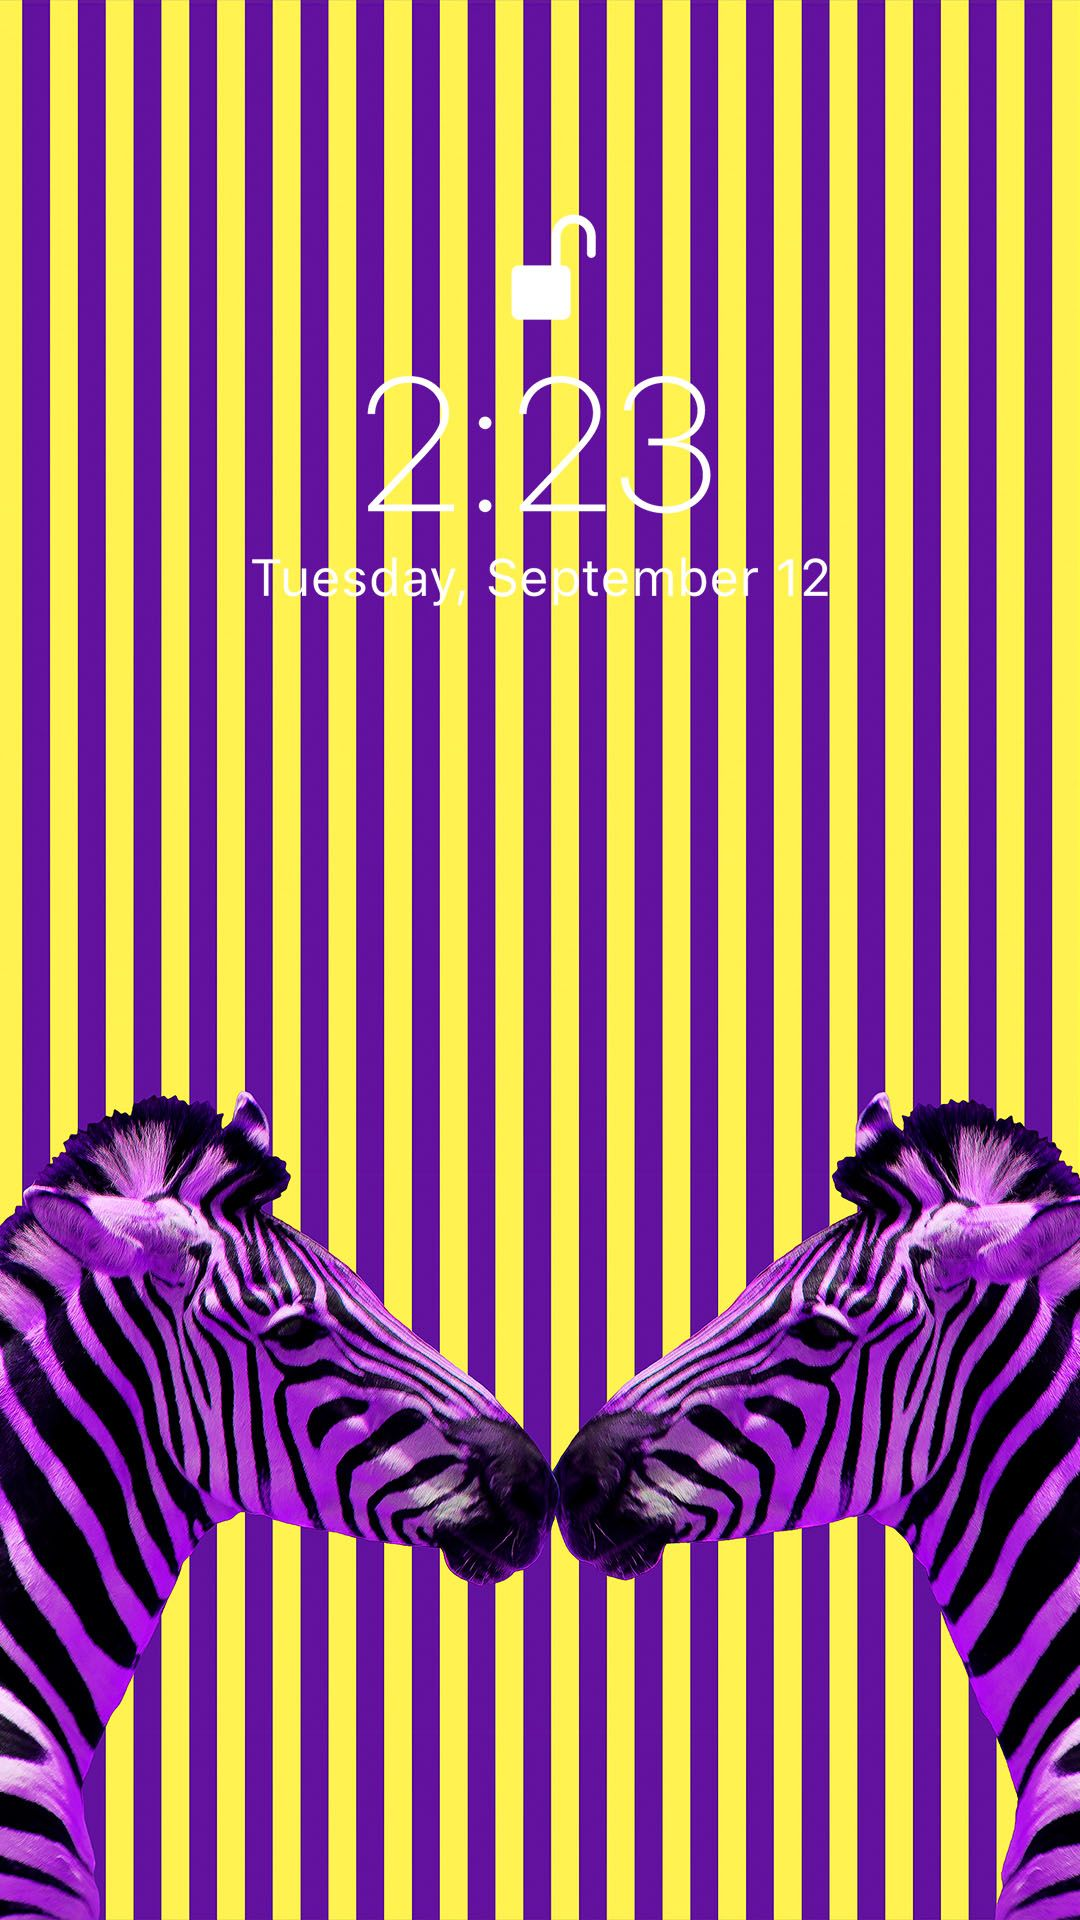 Art wallpaper for your iPhone XS from Vibe App wallpaper